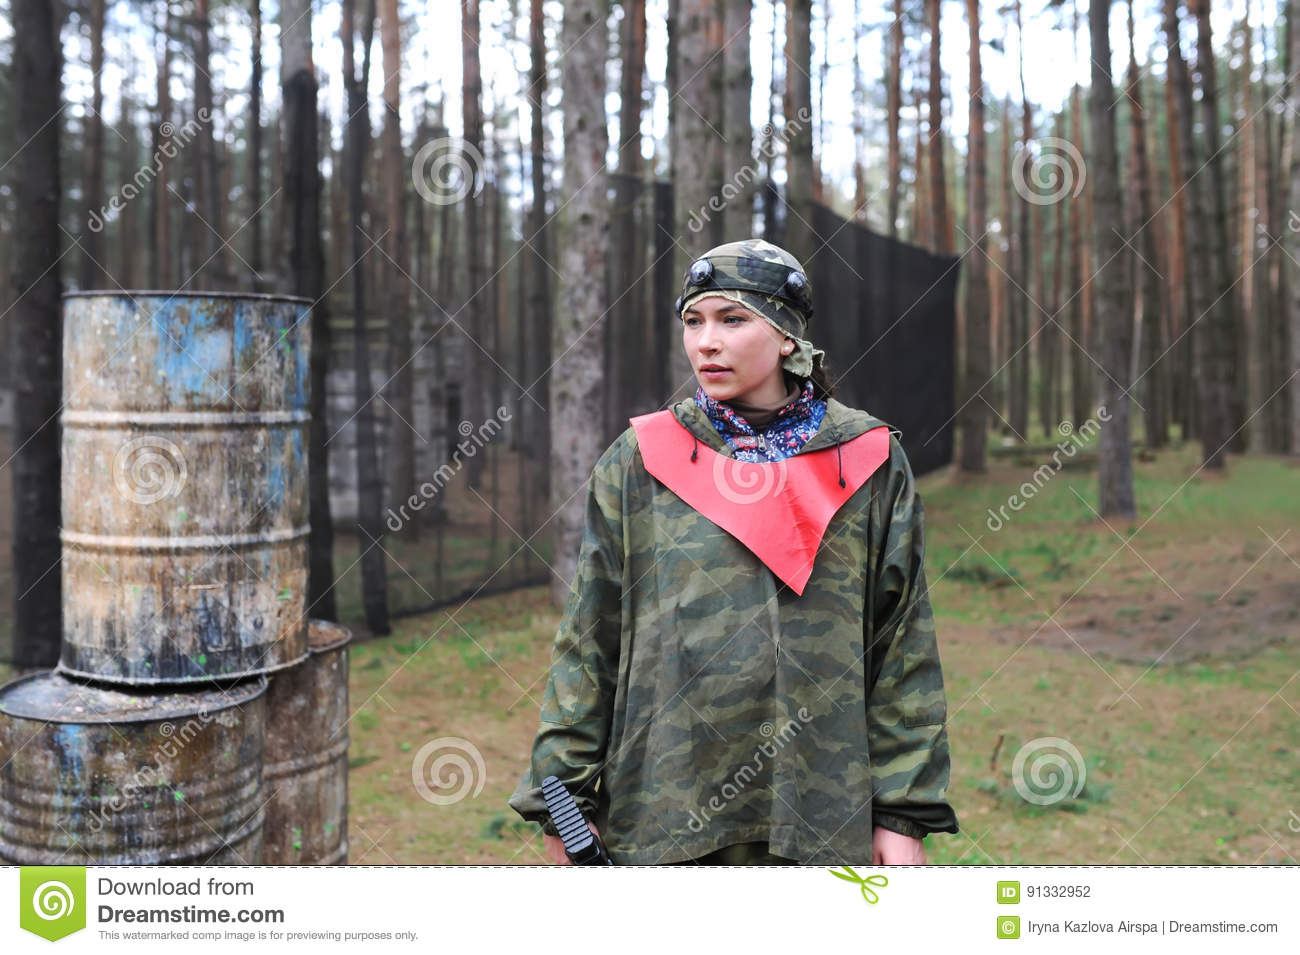 Portrait of young woman in camouflage with a rifle. Outdoors